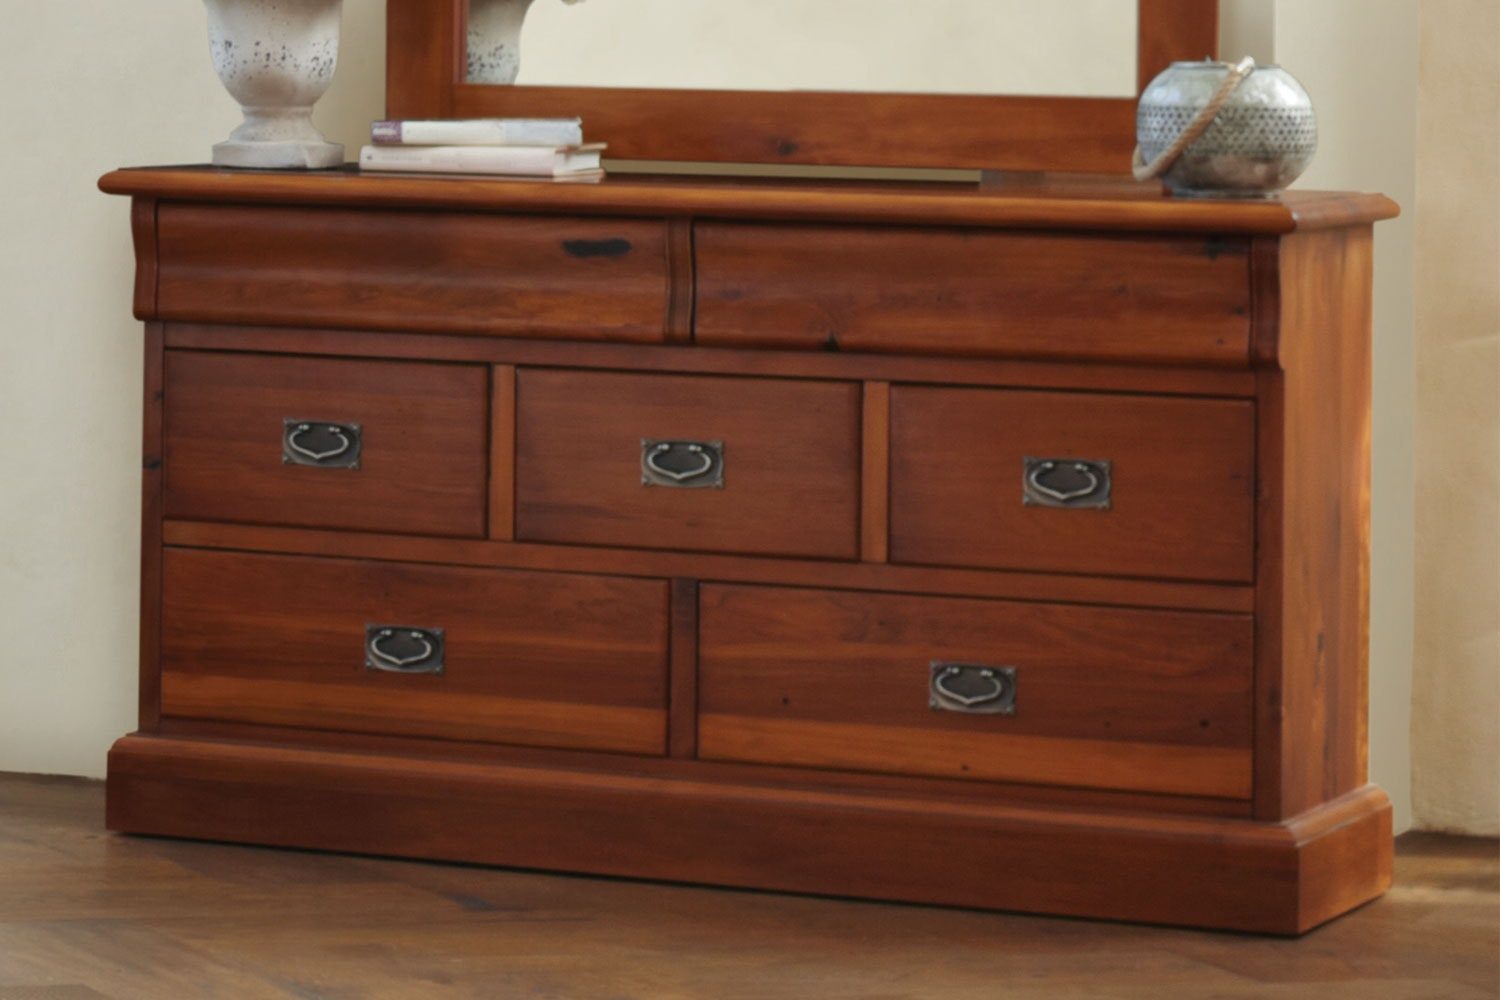 Clevedon 7 Drawer Lowboy by Woodpecker Furniture